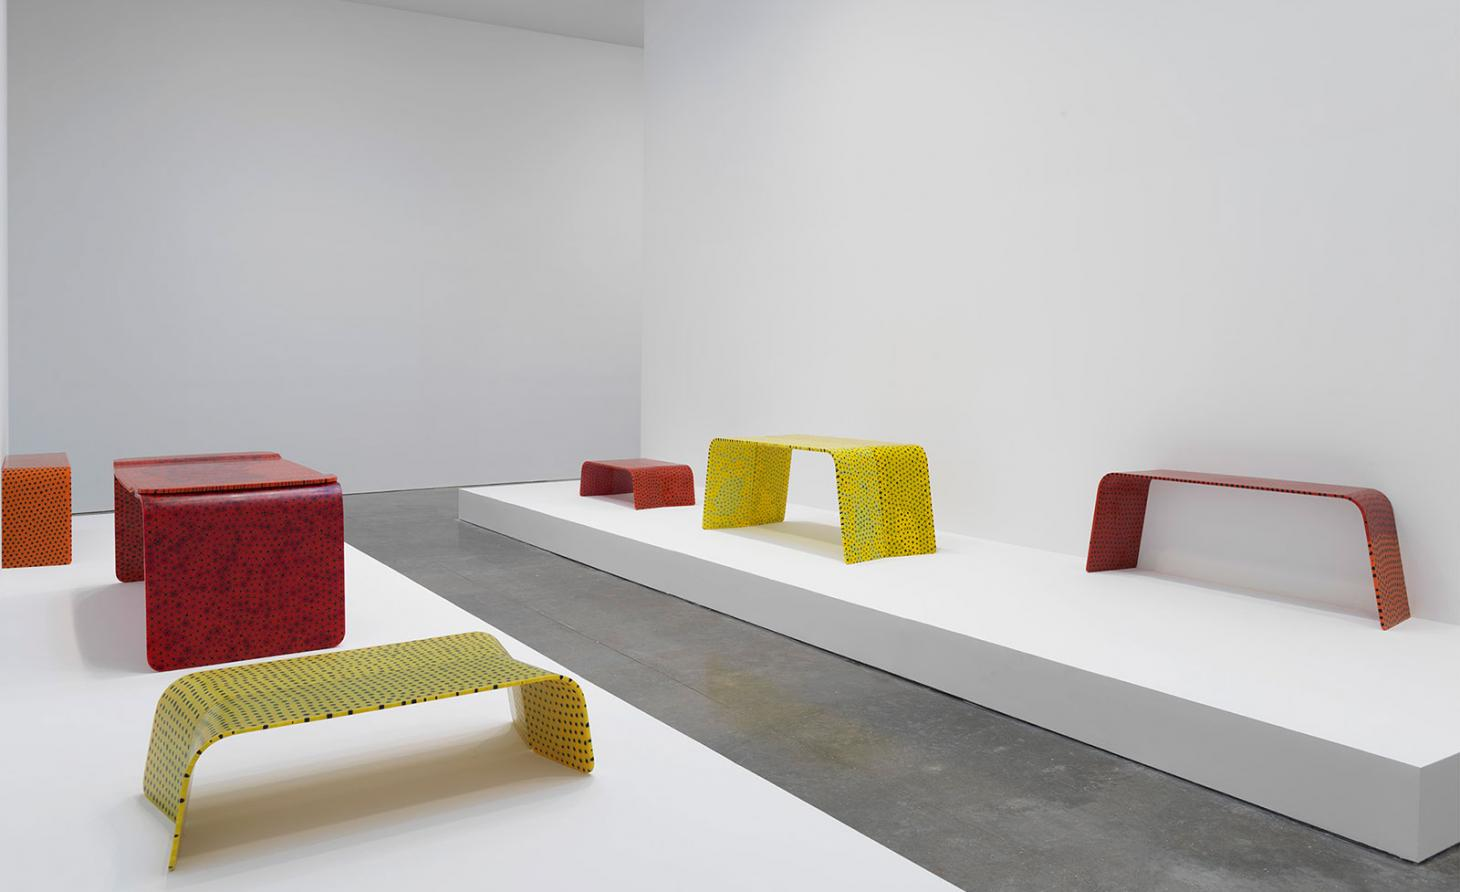 marc newson solo show at Gagosian in New York